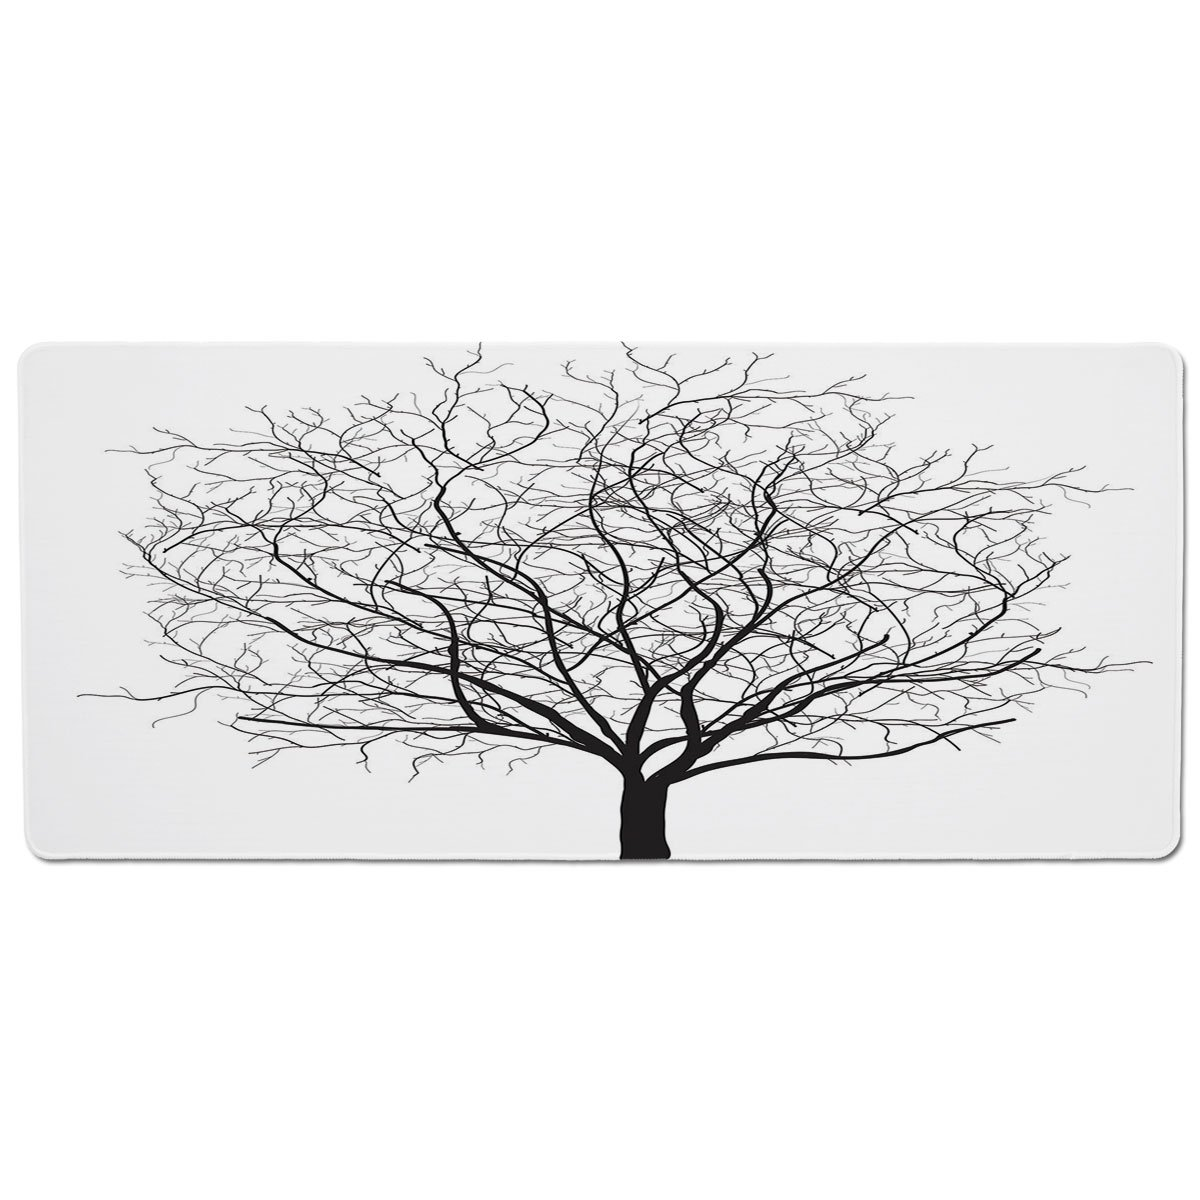 35.4\ iPrint Pet Mat for Food and Water,Apartment Decor,an Old Withered Oak Crown Without Leaves Tree Branches Illustration,Black and White,Rectangle Non-Slip Rubber Mat for Dogs and Cats